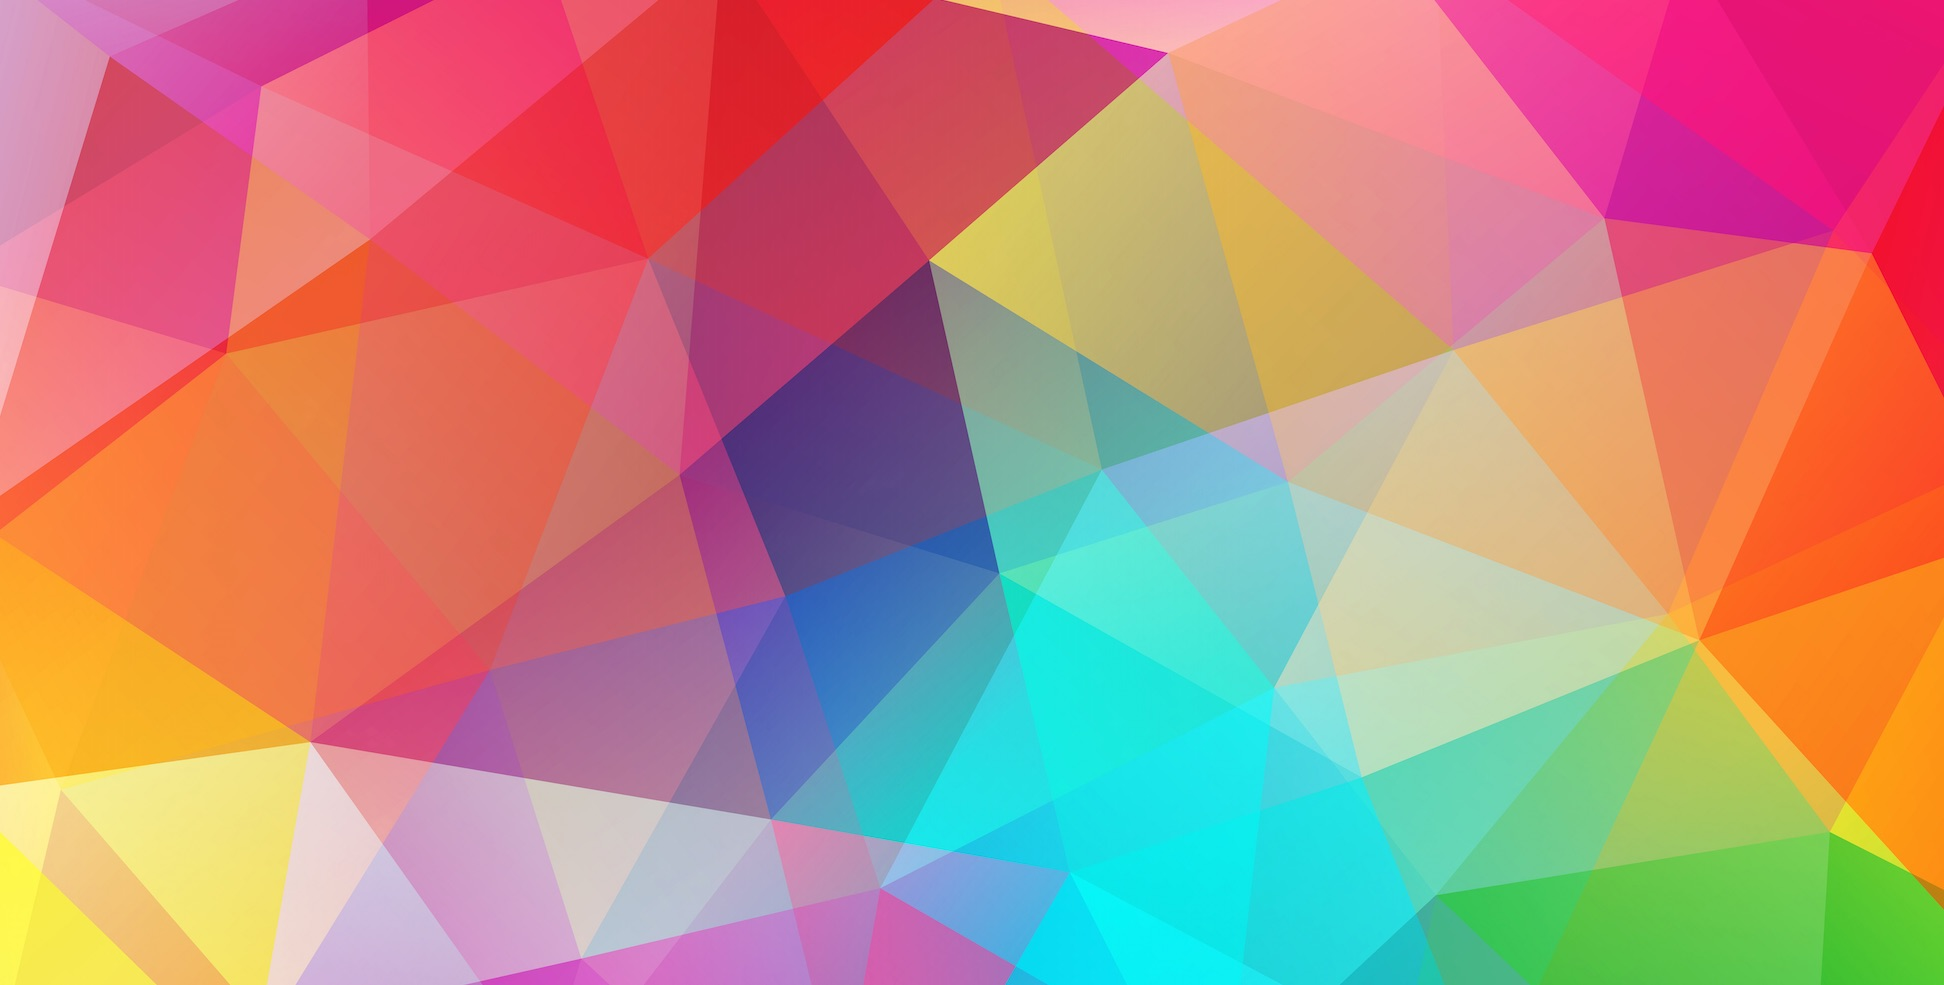 Cute Red Blue And Yellow Hd Graphic Flowers Wallpaper Web Design Color Theory How To Create The Right Emotions